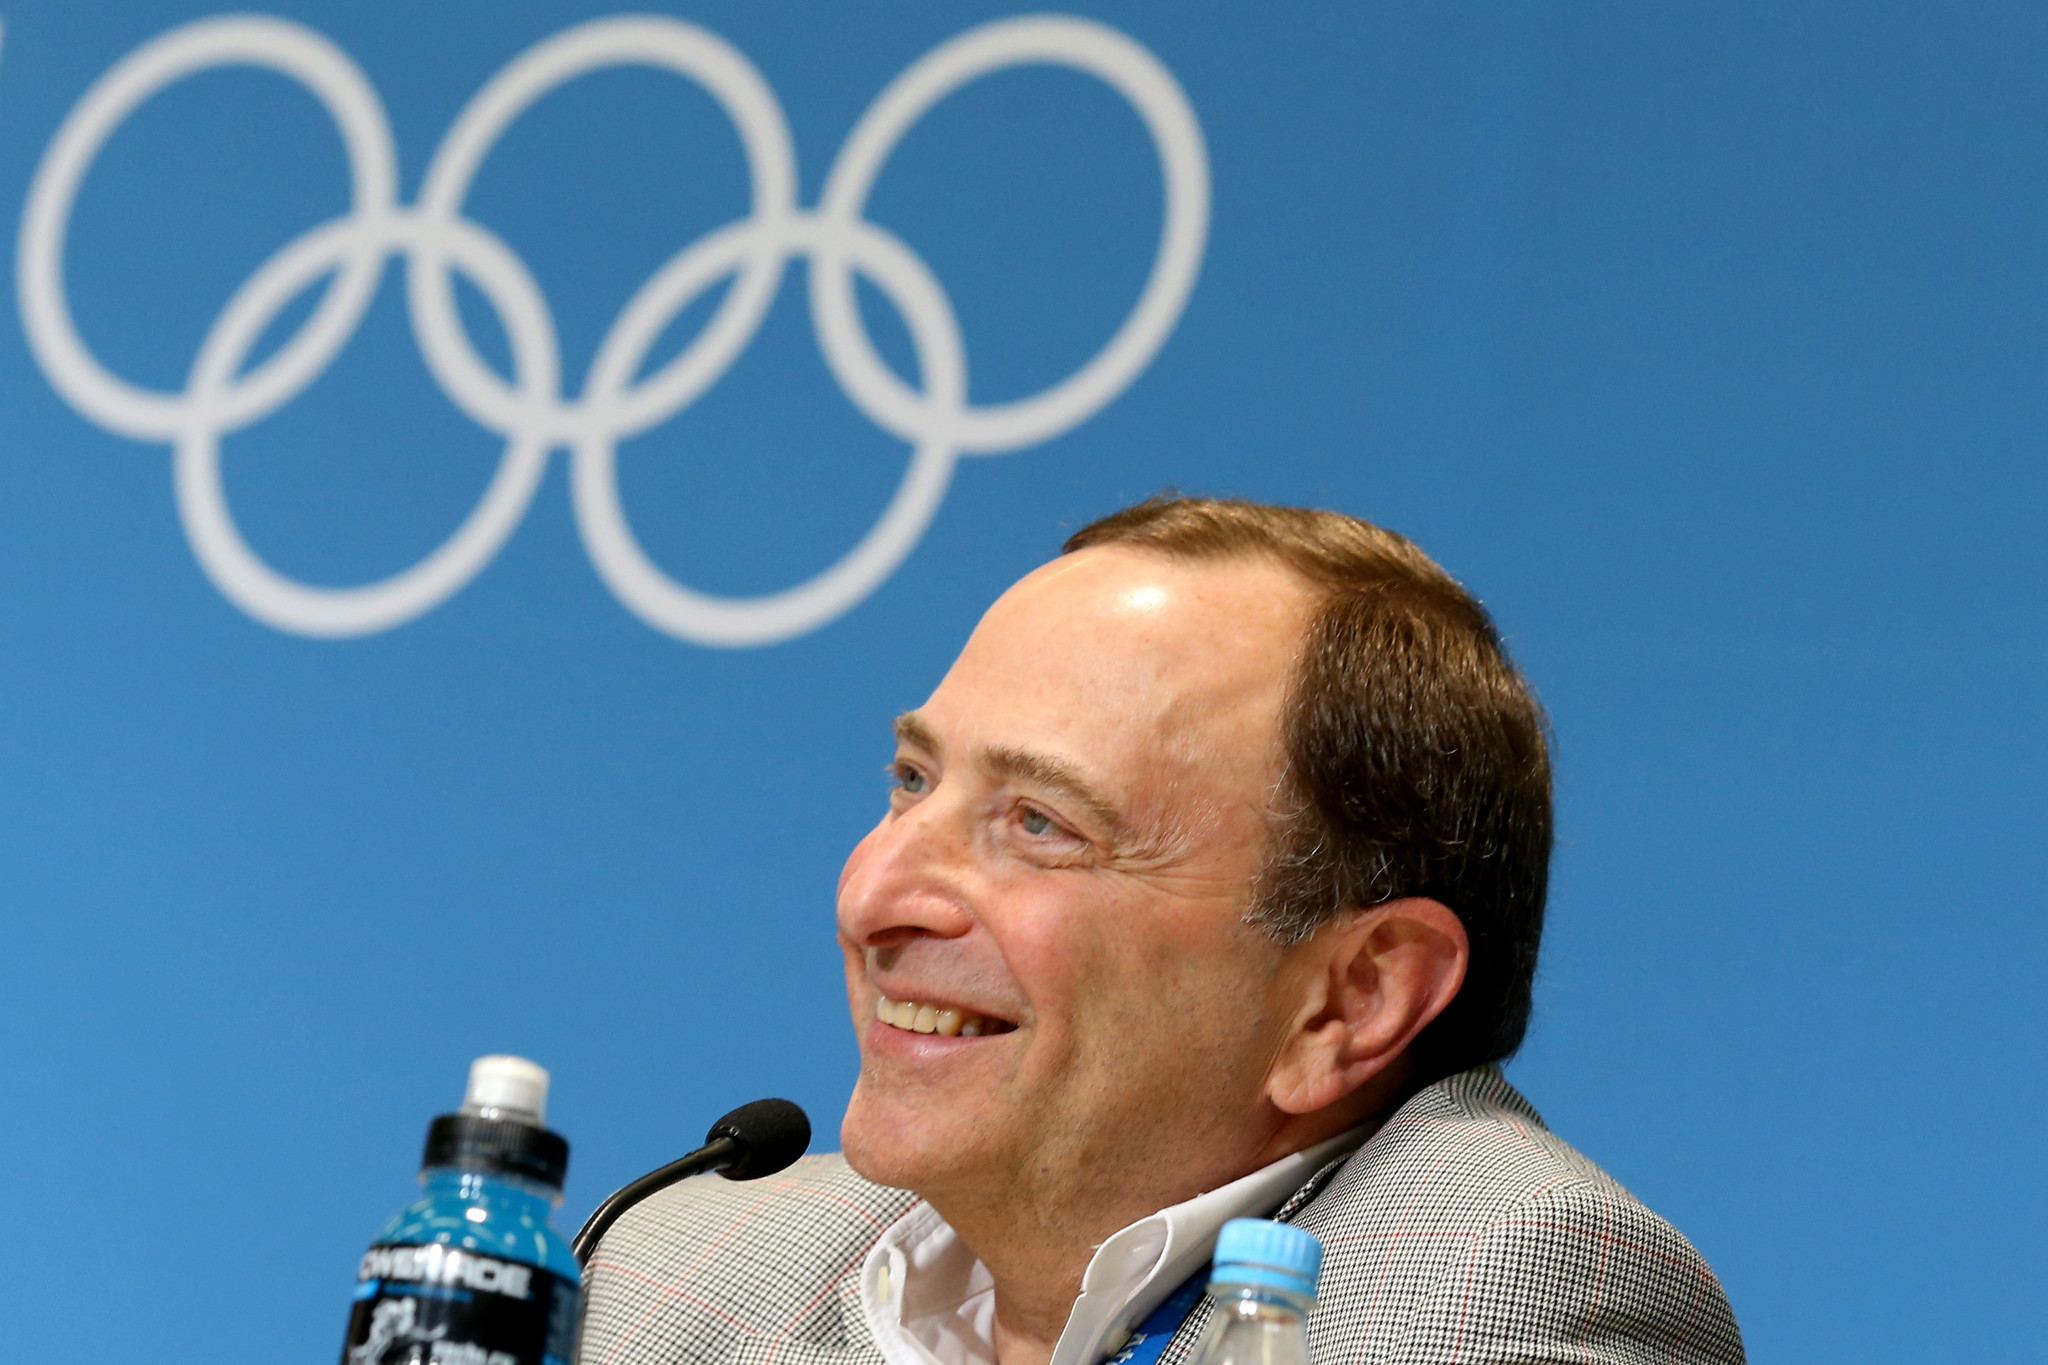 Gary Bettman is among the latest group of inductees to the Hockey Hall of Fame ©Getty Images